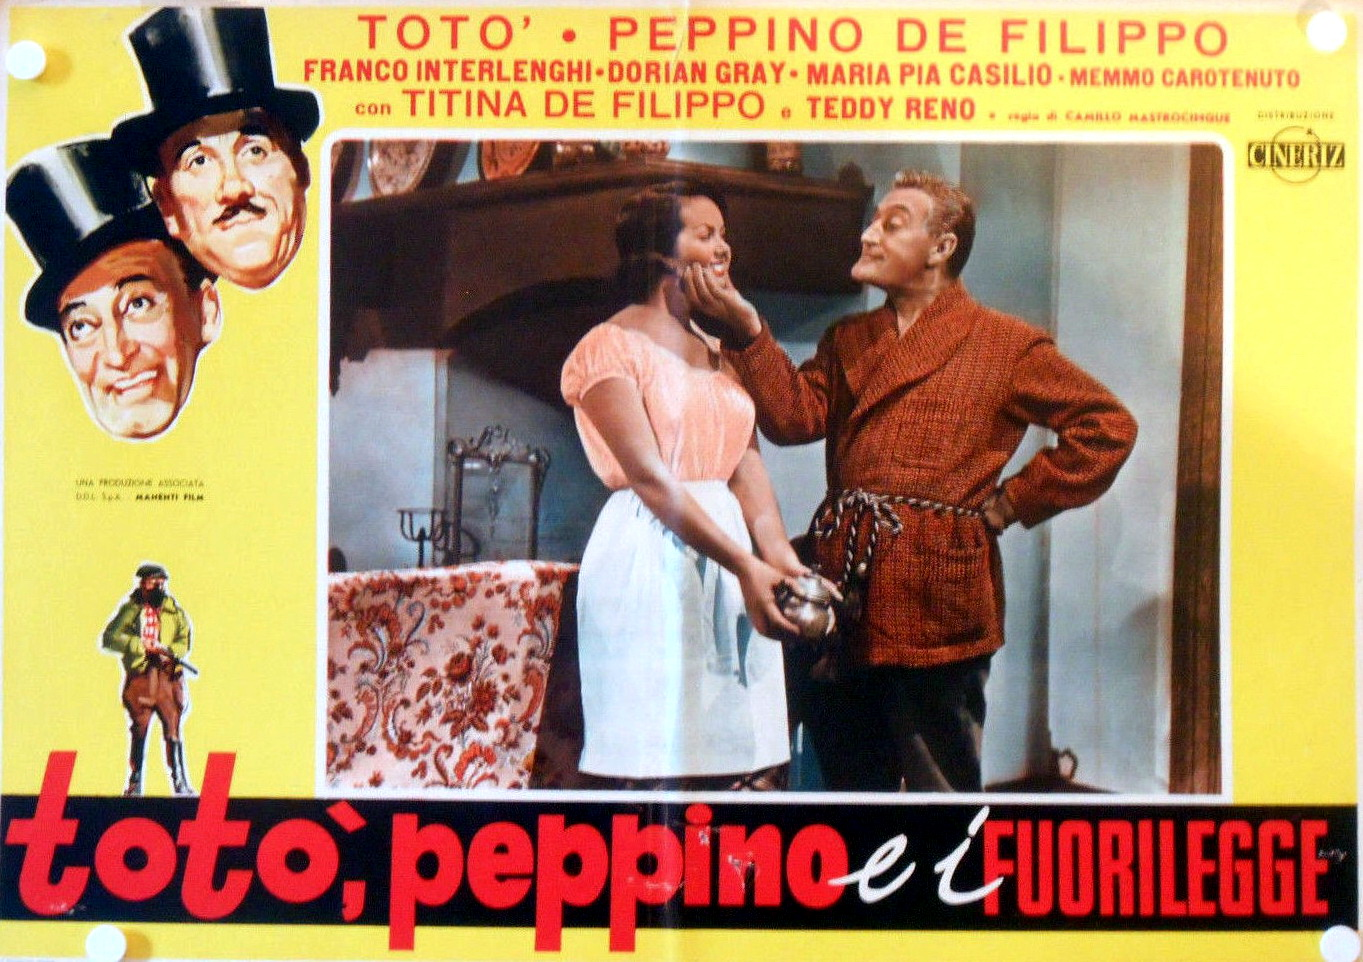 Totò, Peppino e i fuorilegge (1956) - Photo Gallery - IMDb